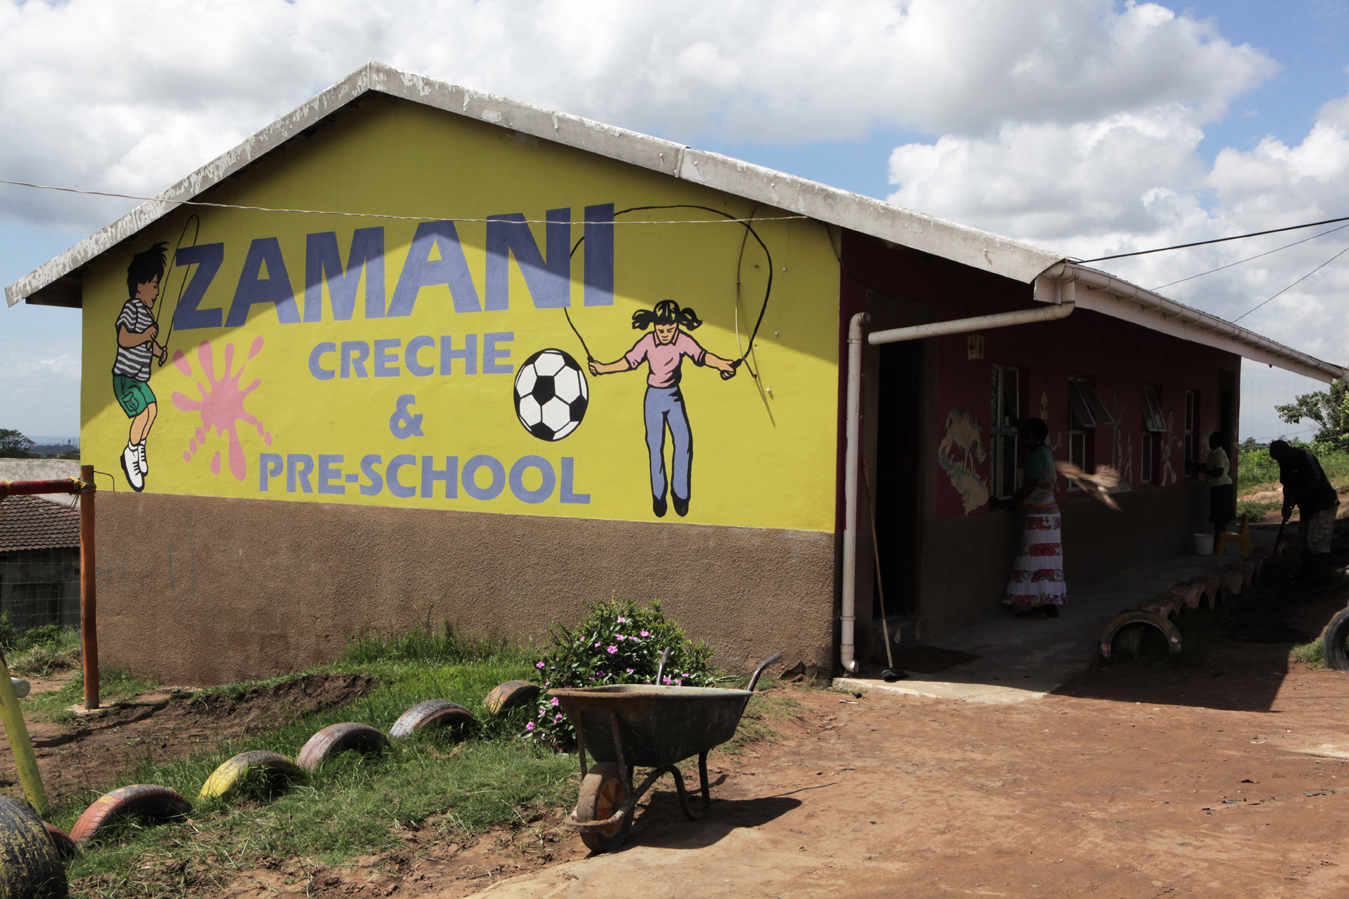 The Zamani ECD Centre on the outskirts of Durban in the eThekwini district. Principal Ethel Ngcobo first opened as a crèche in 1995, responding to the need for children to be cared for while their parents were at work. After years of dedication and support from ABSA, the Outreach Foundation and Save the Children, she built a proper ECD centre. Over 92% of preschool children in KwaZulu-Natal attend unregistered ECD centres (crèches). Save the Children, operating in KZN for over 50 years, recognised the need to support crèches in the area with better management skills and access to learning materials, as well as running the crèche forums and supporting crèches with registration to become ECD centres.